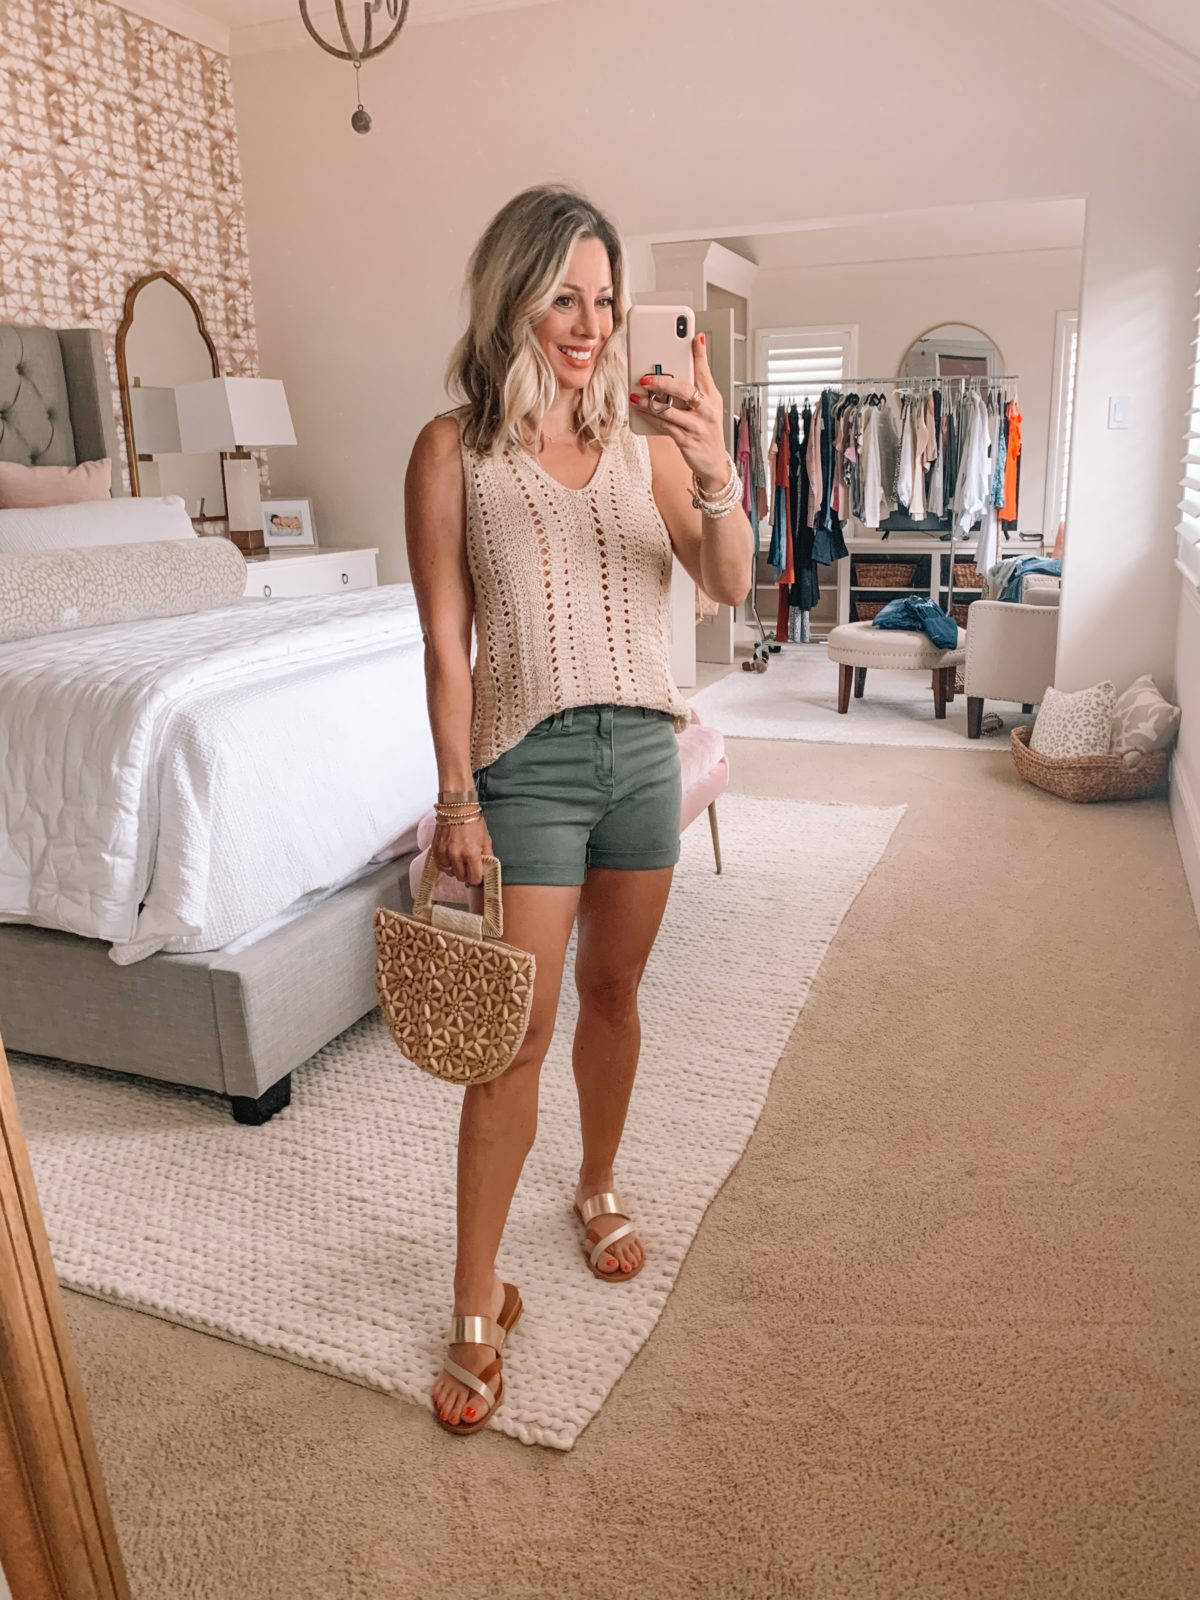 Dressing Room Finds Nordstrom and Target, Olive Denim Shorts, Gold Sandals, Beaded Bag